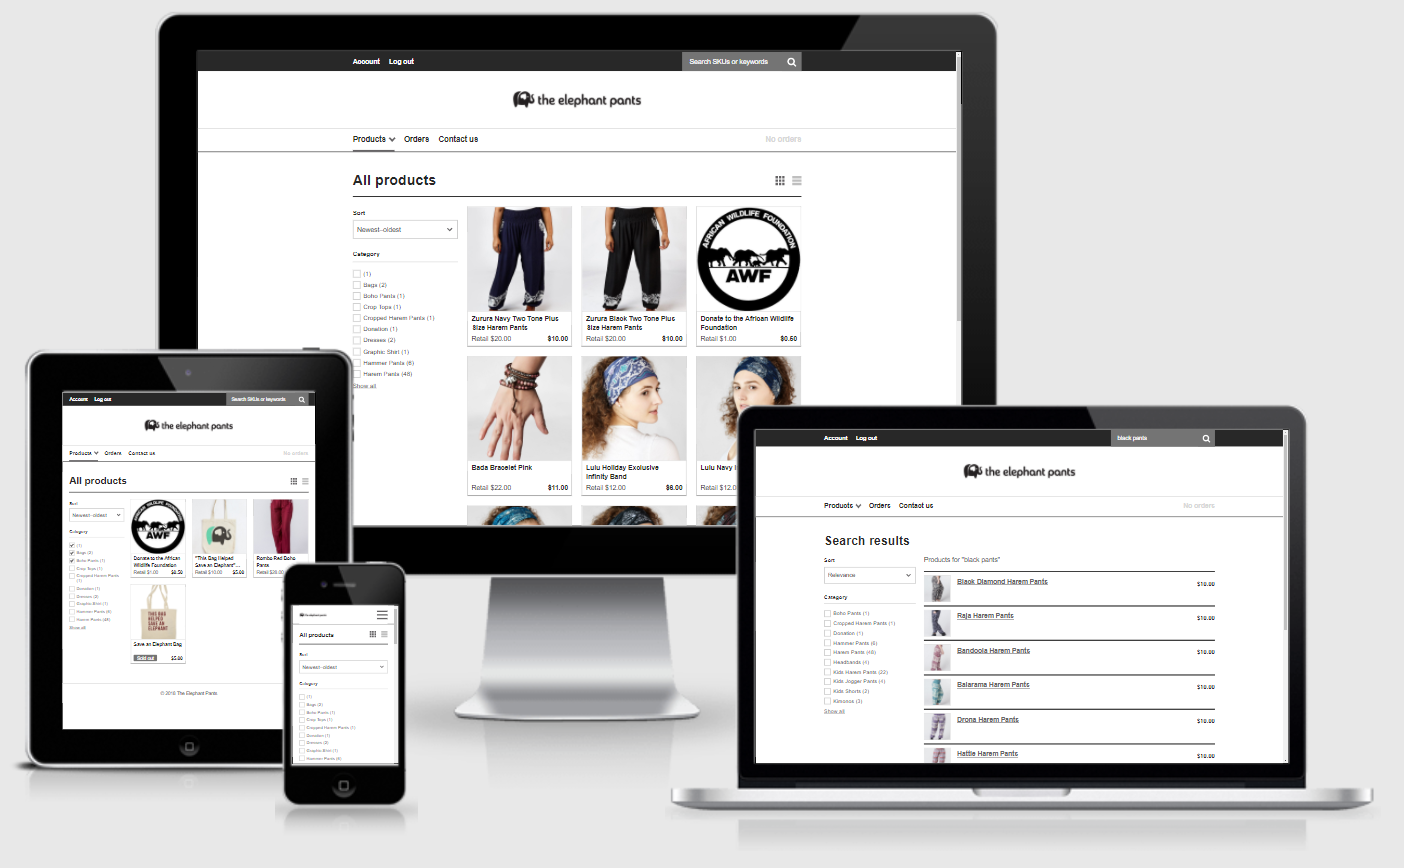 Mobile responsive design is a critical B2B ecommerce feature